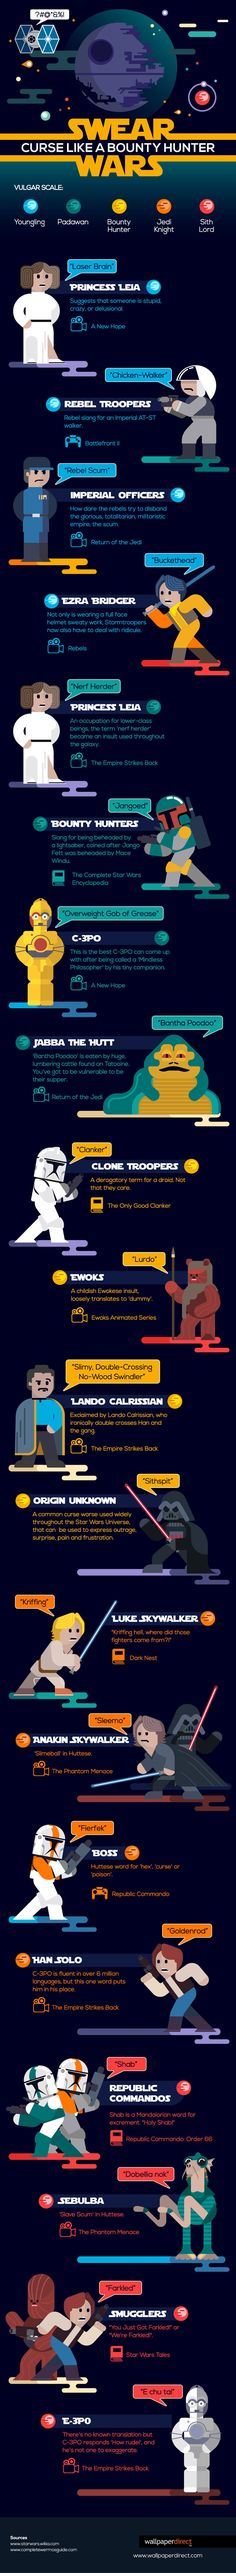 Swear Wars: How to curse like a bounty hunter #infographic #StarWars #Entertainment